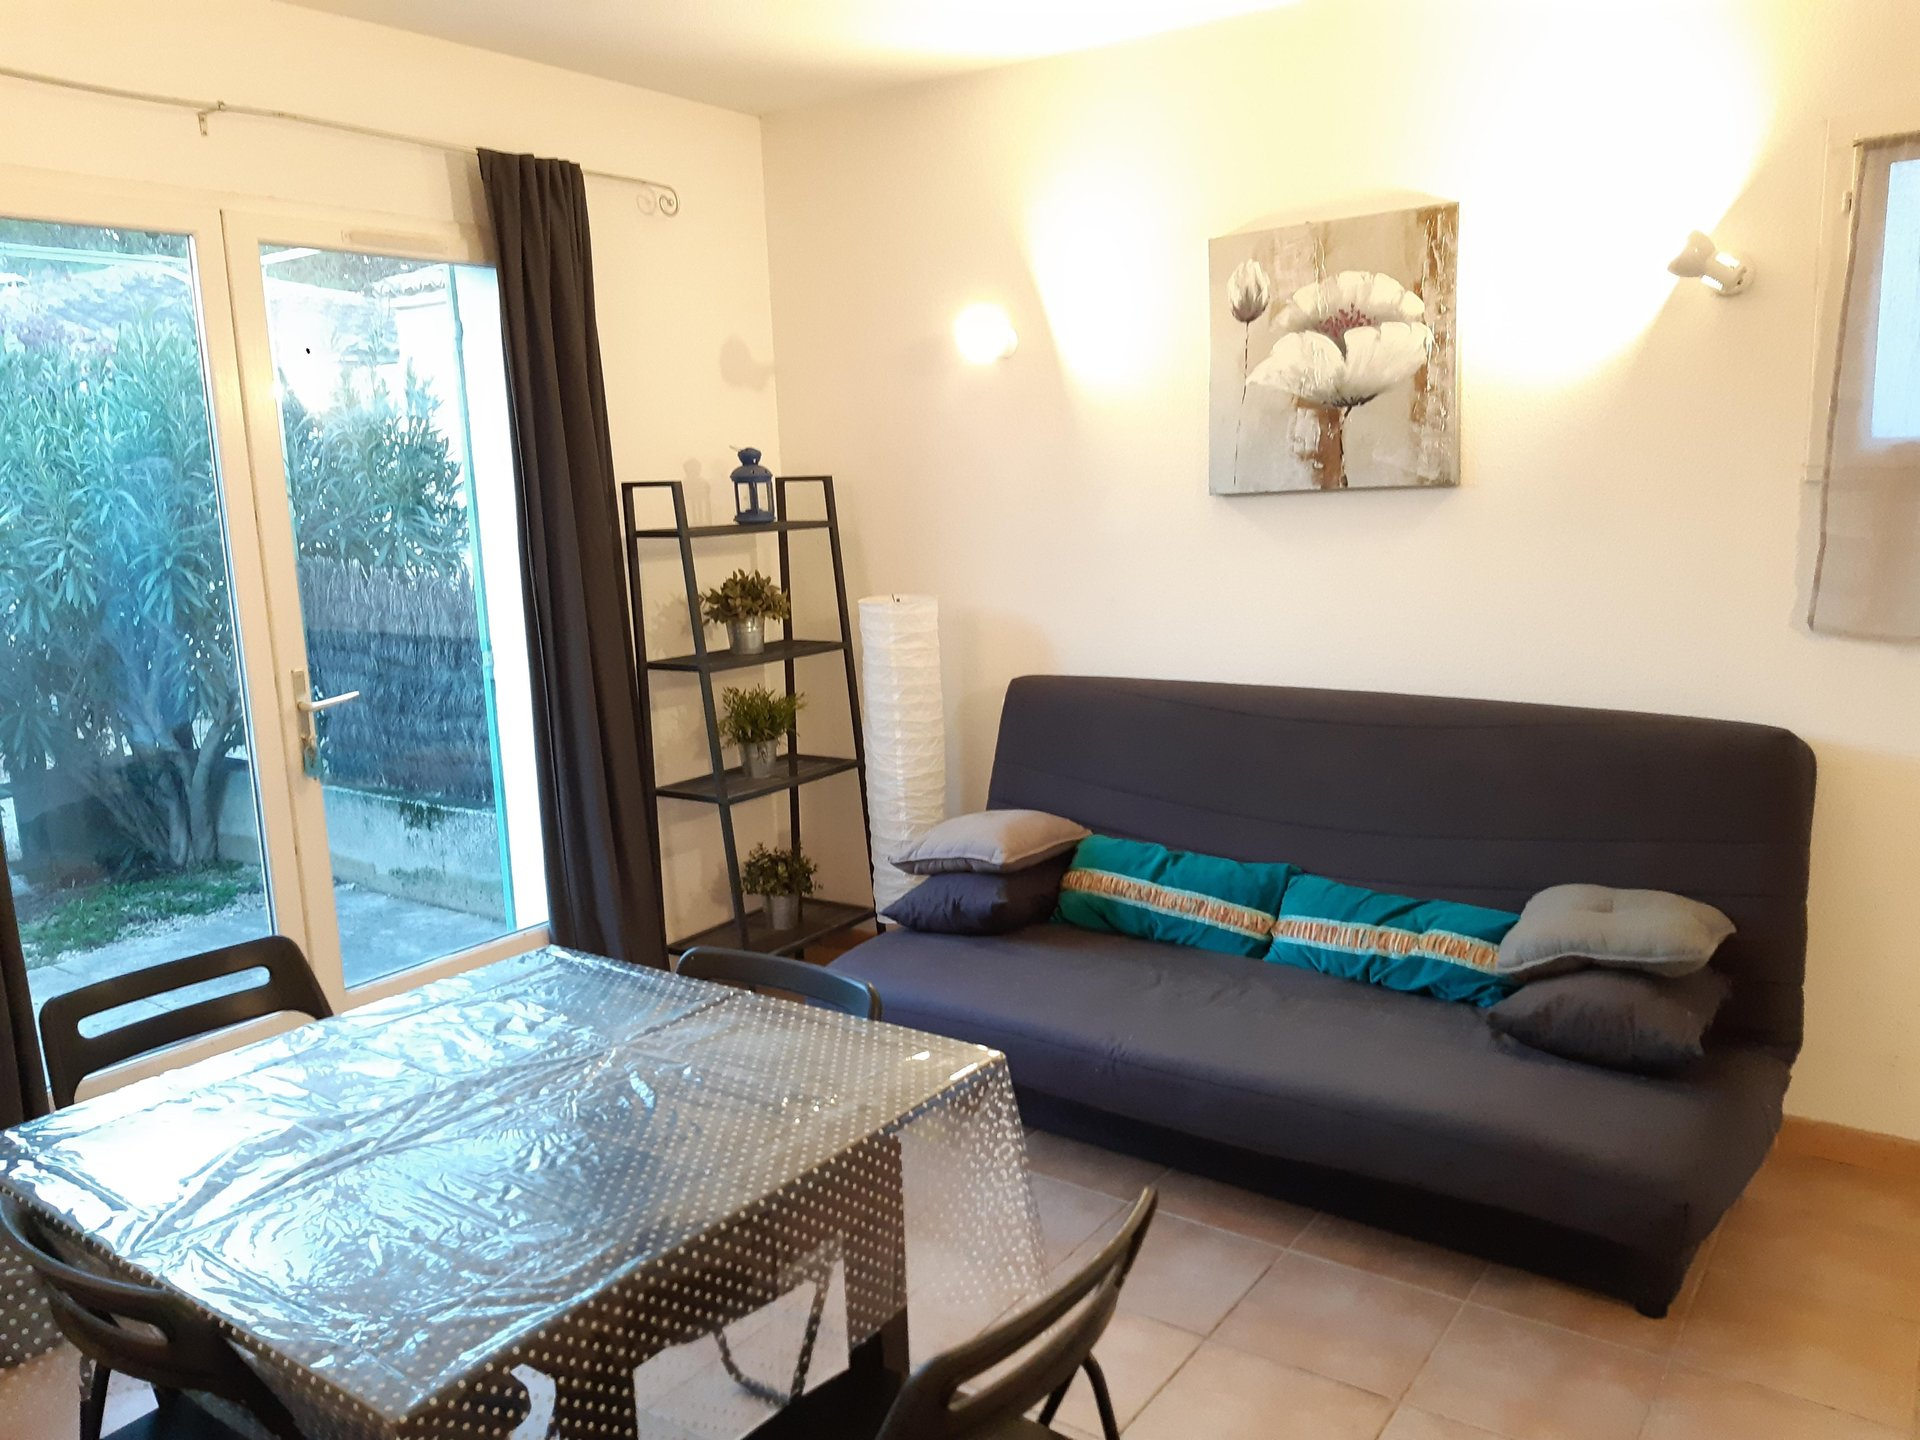 Location Appartement SAINT-RÉMY-DE-PROVENCE Mandat : 804